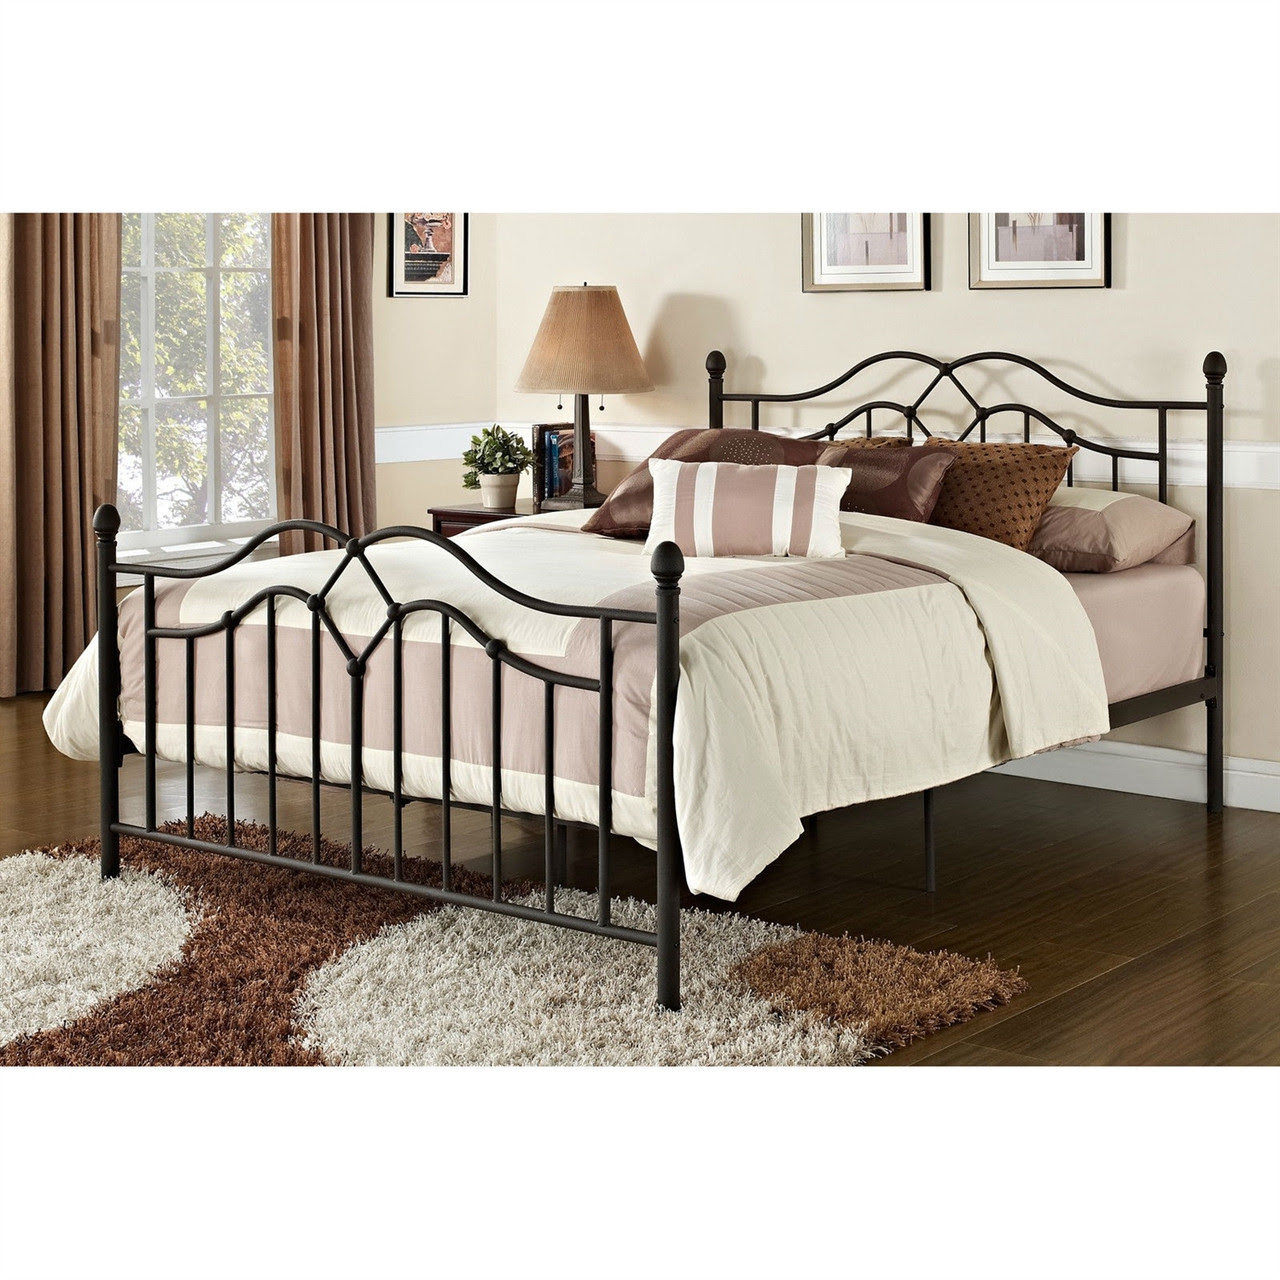 Queen size Brushed Bronze Metal Bed with Headboard and ...